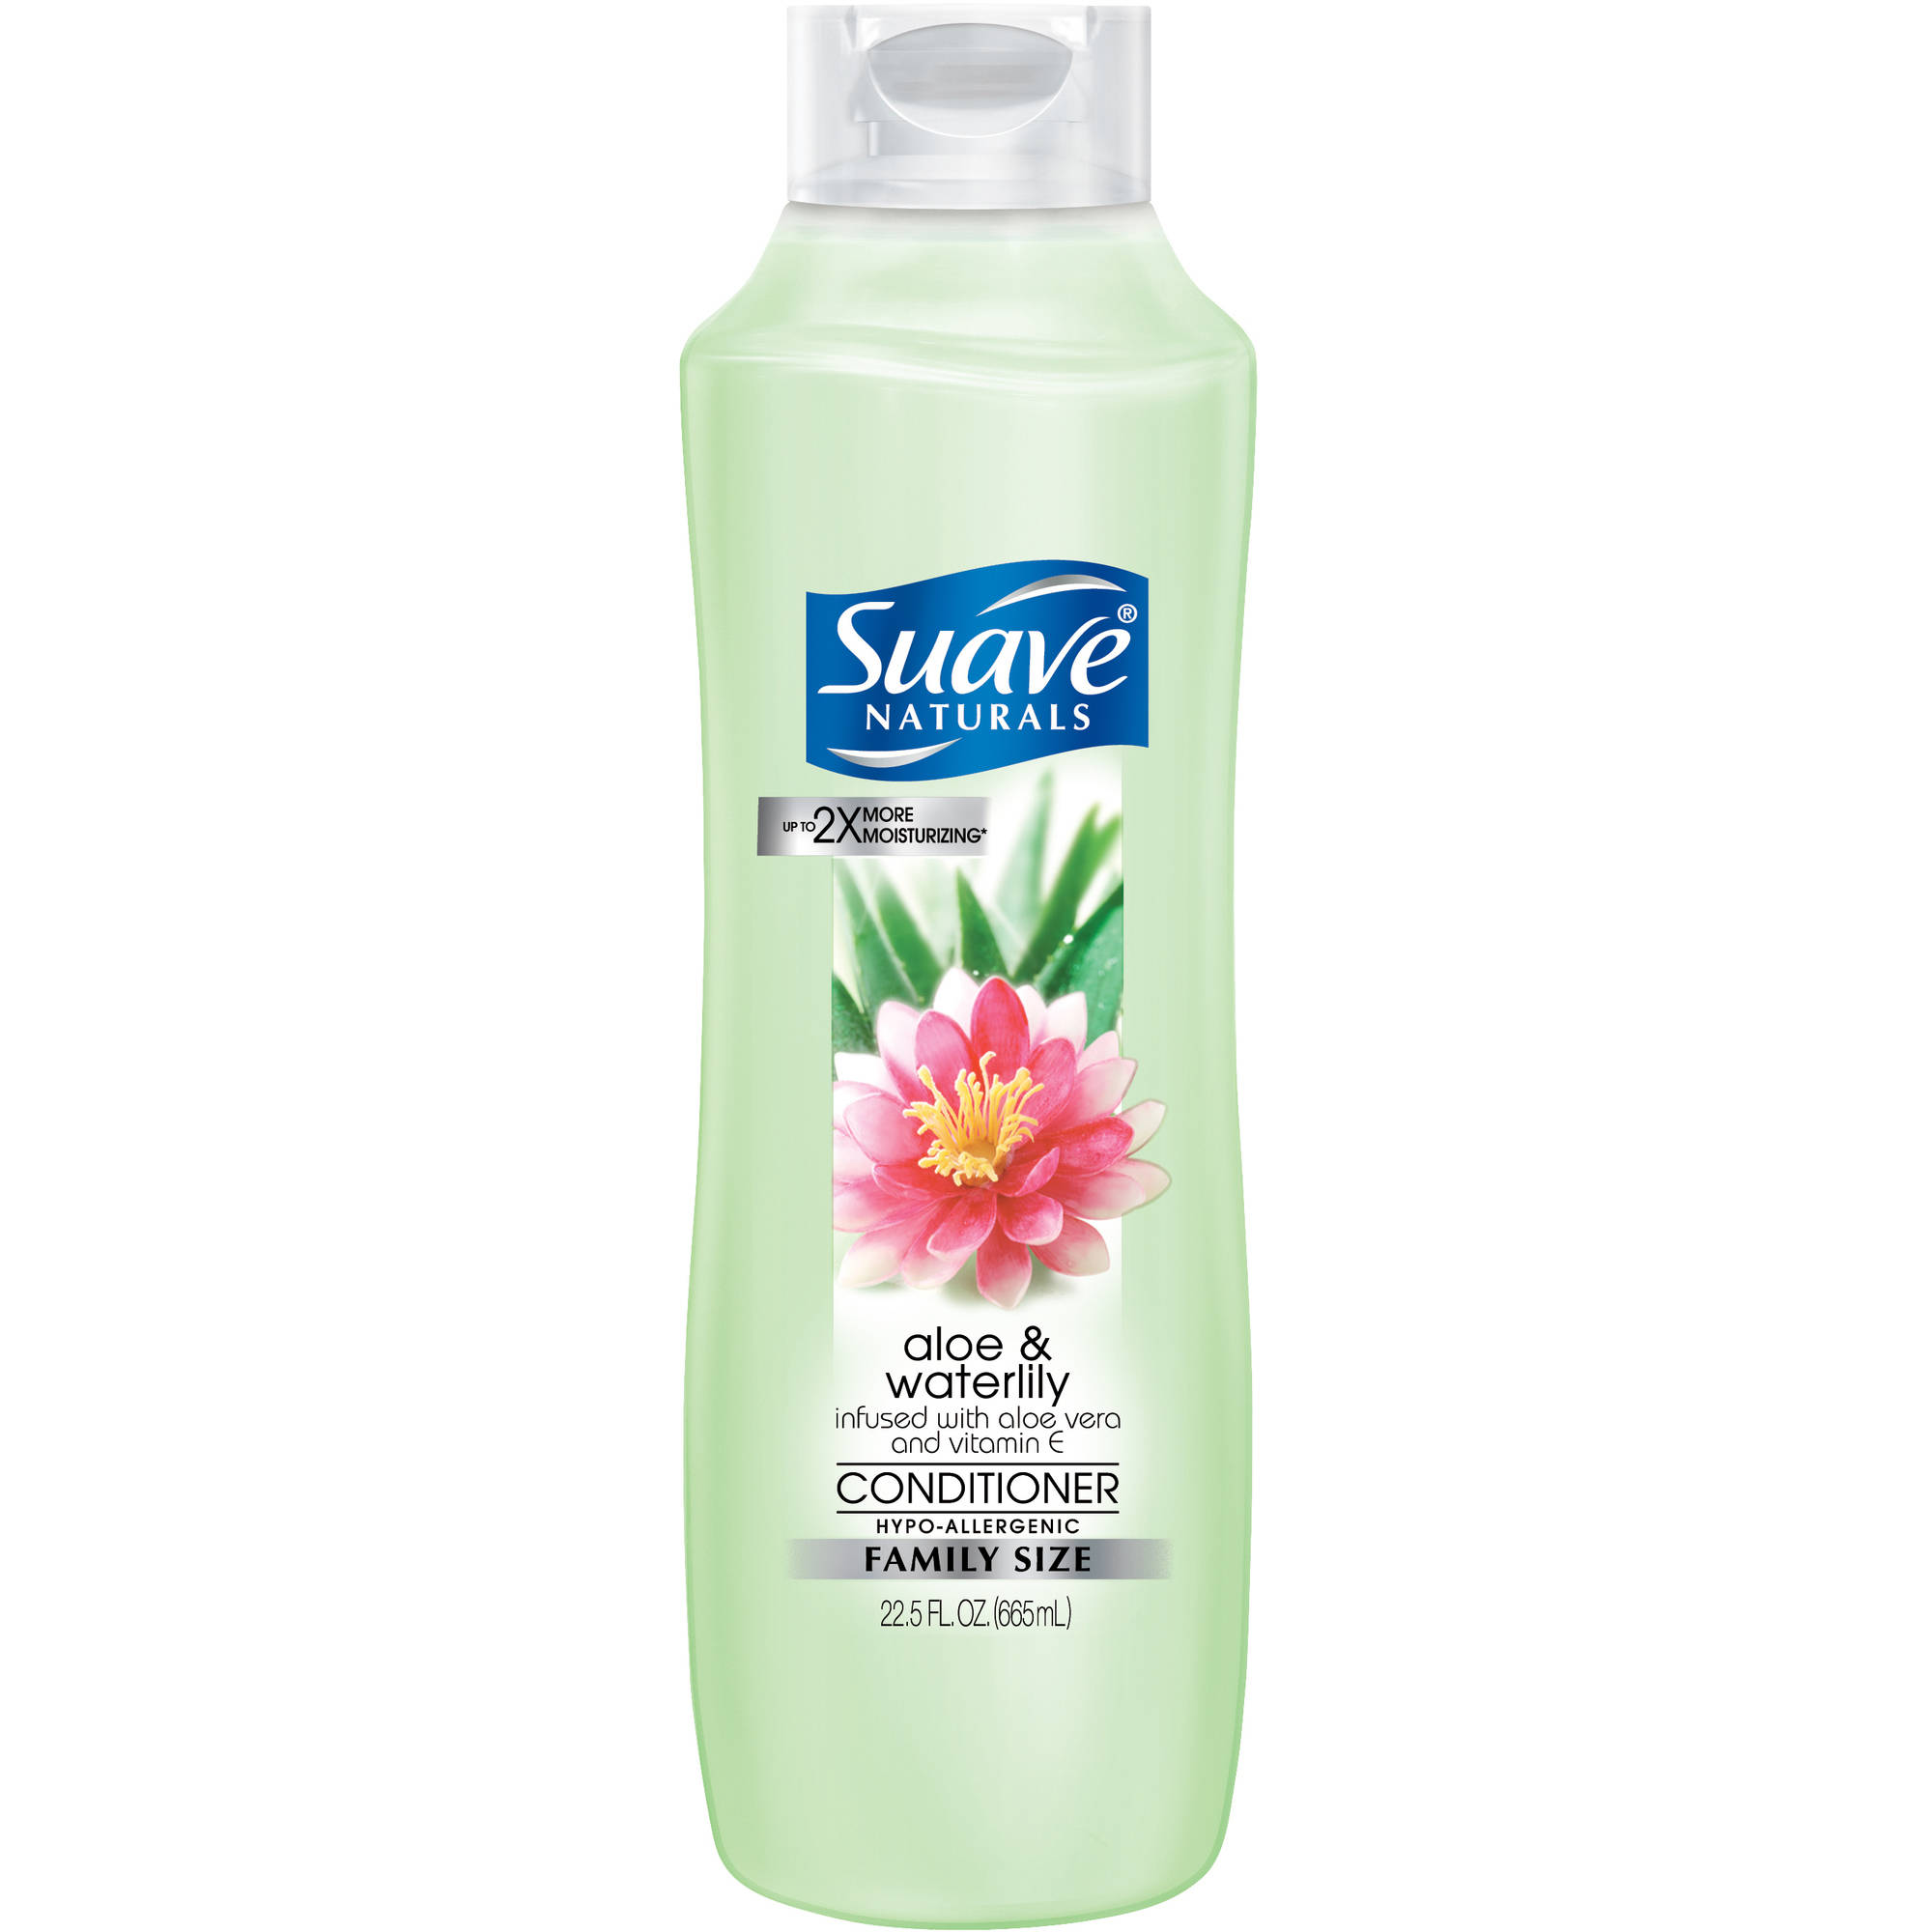 Suave Naturals Aloe & Waterlily Conditioner, 22.5 oz